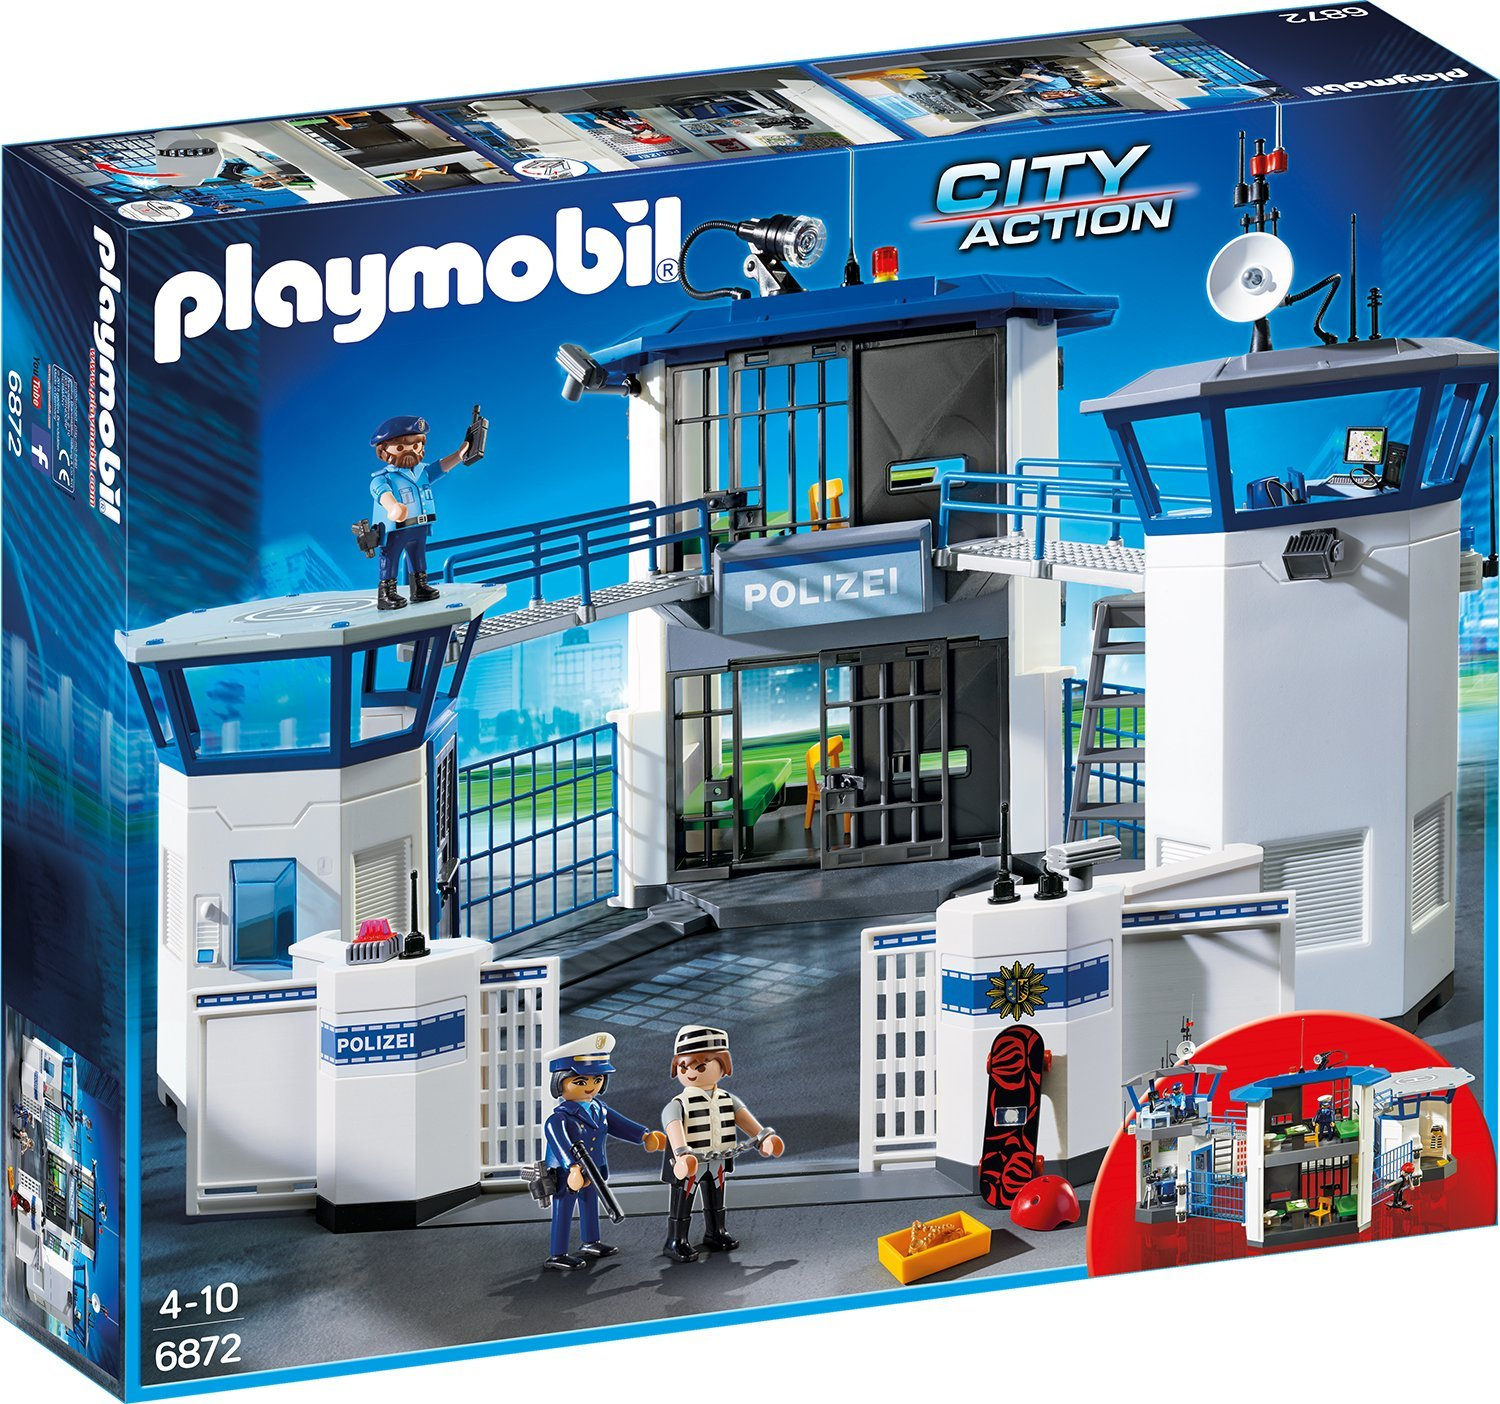 Playmobil Polizei CityAction amazon